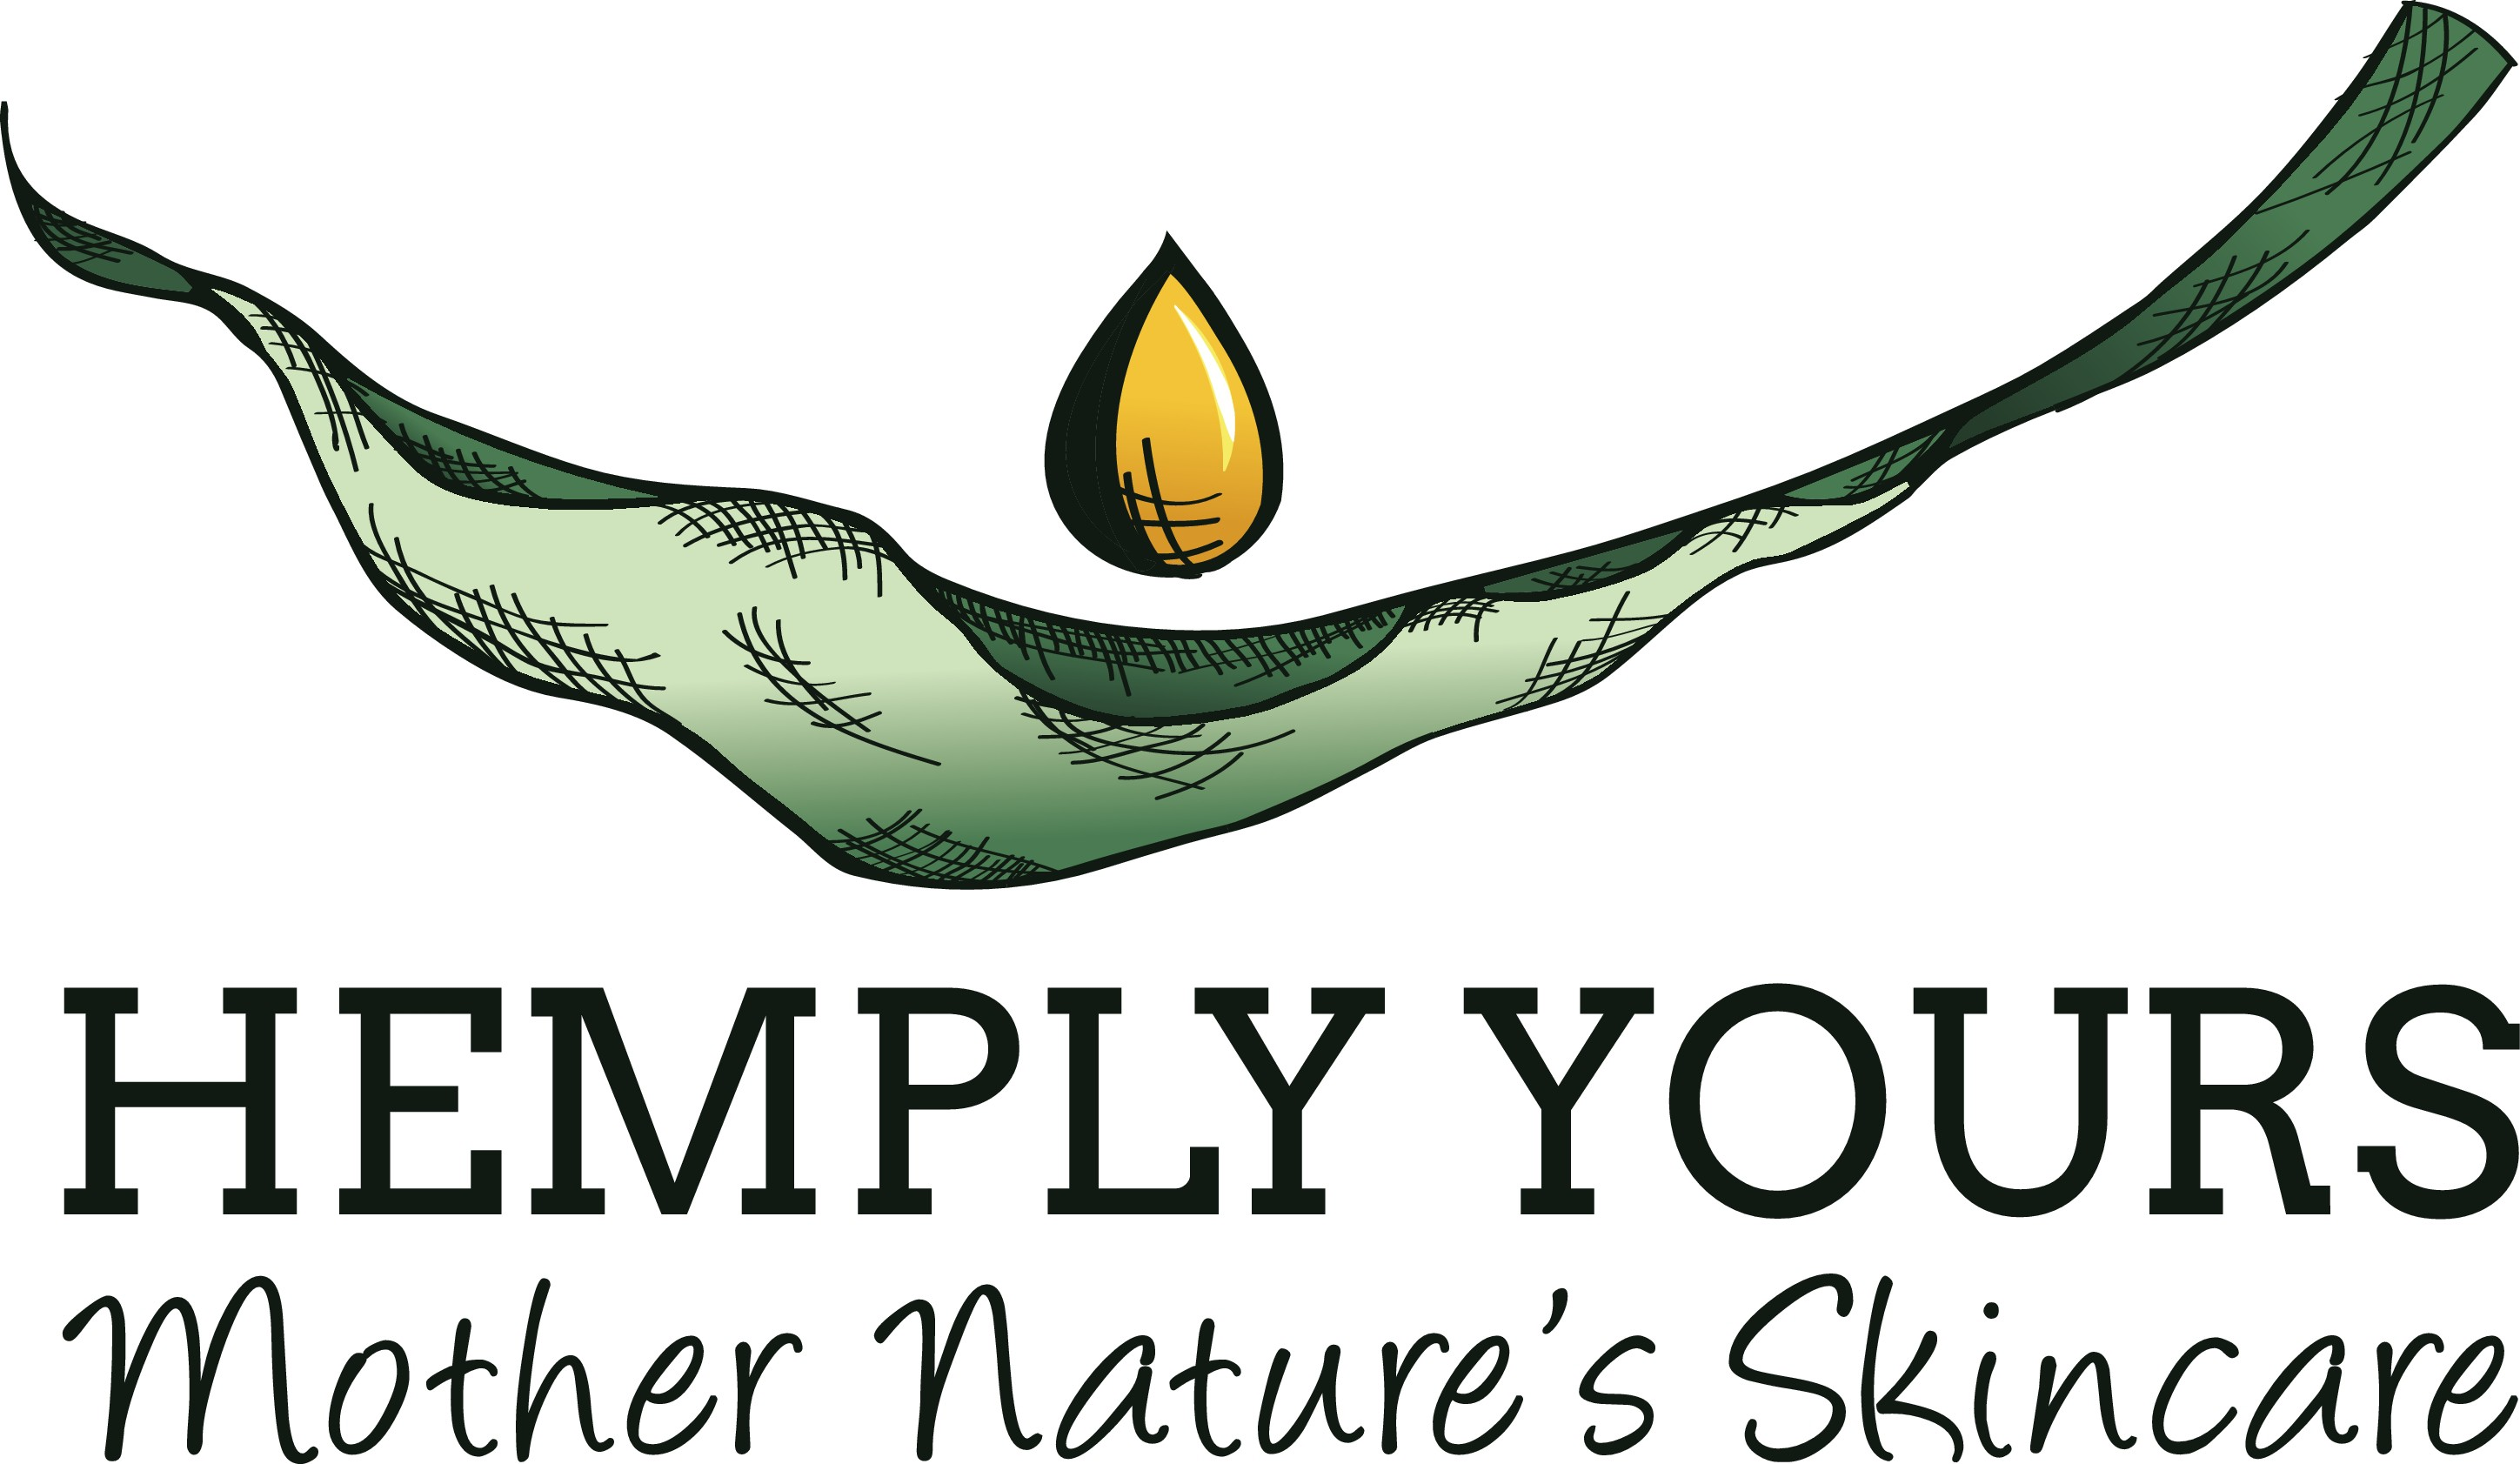 Design a unique, classic, and eye-catching logo for Hemply Yours